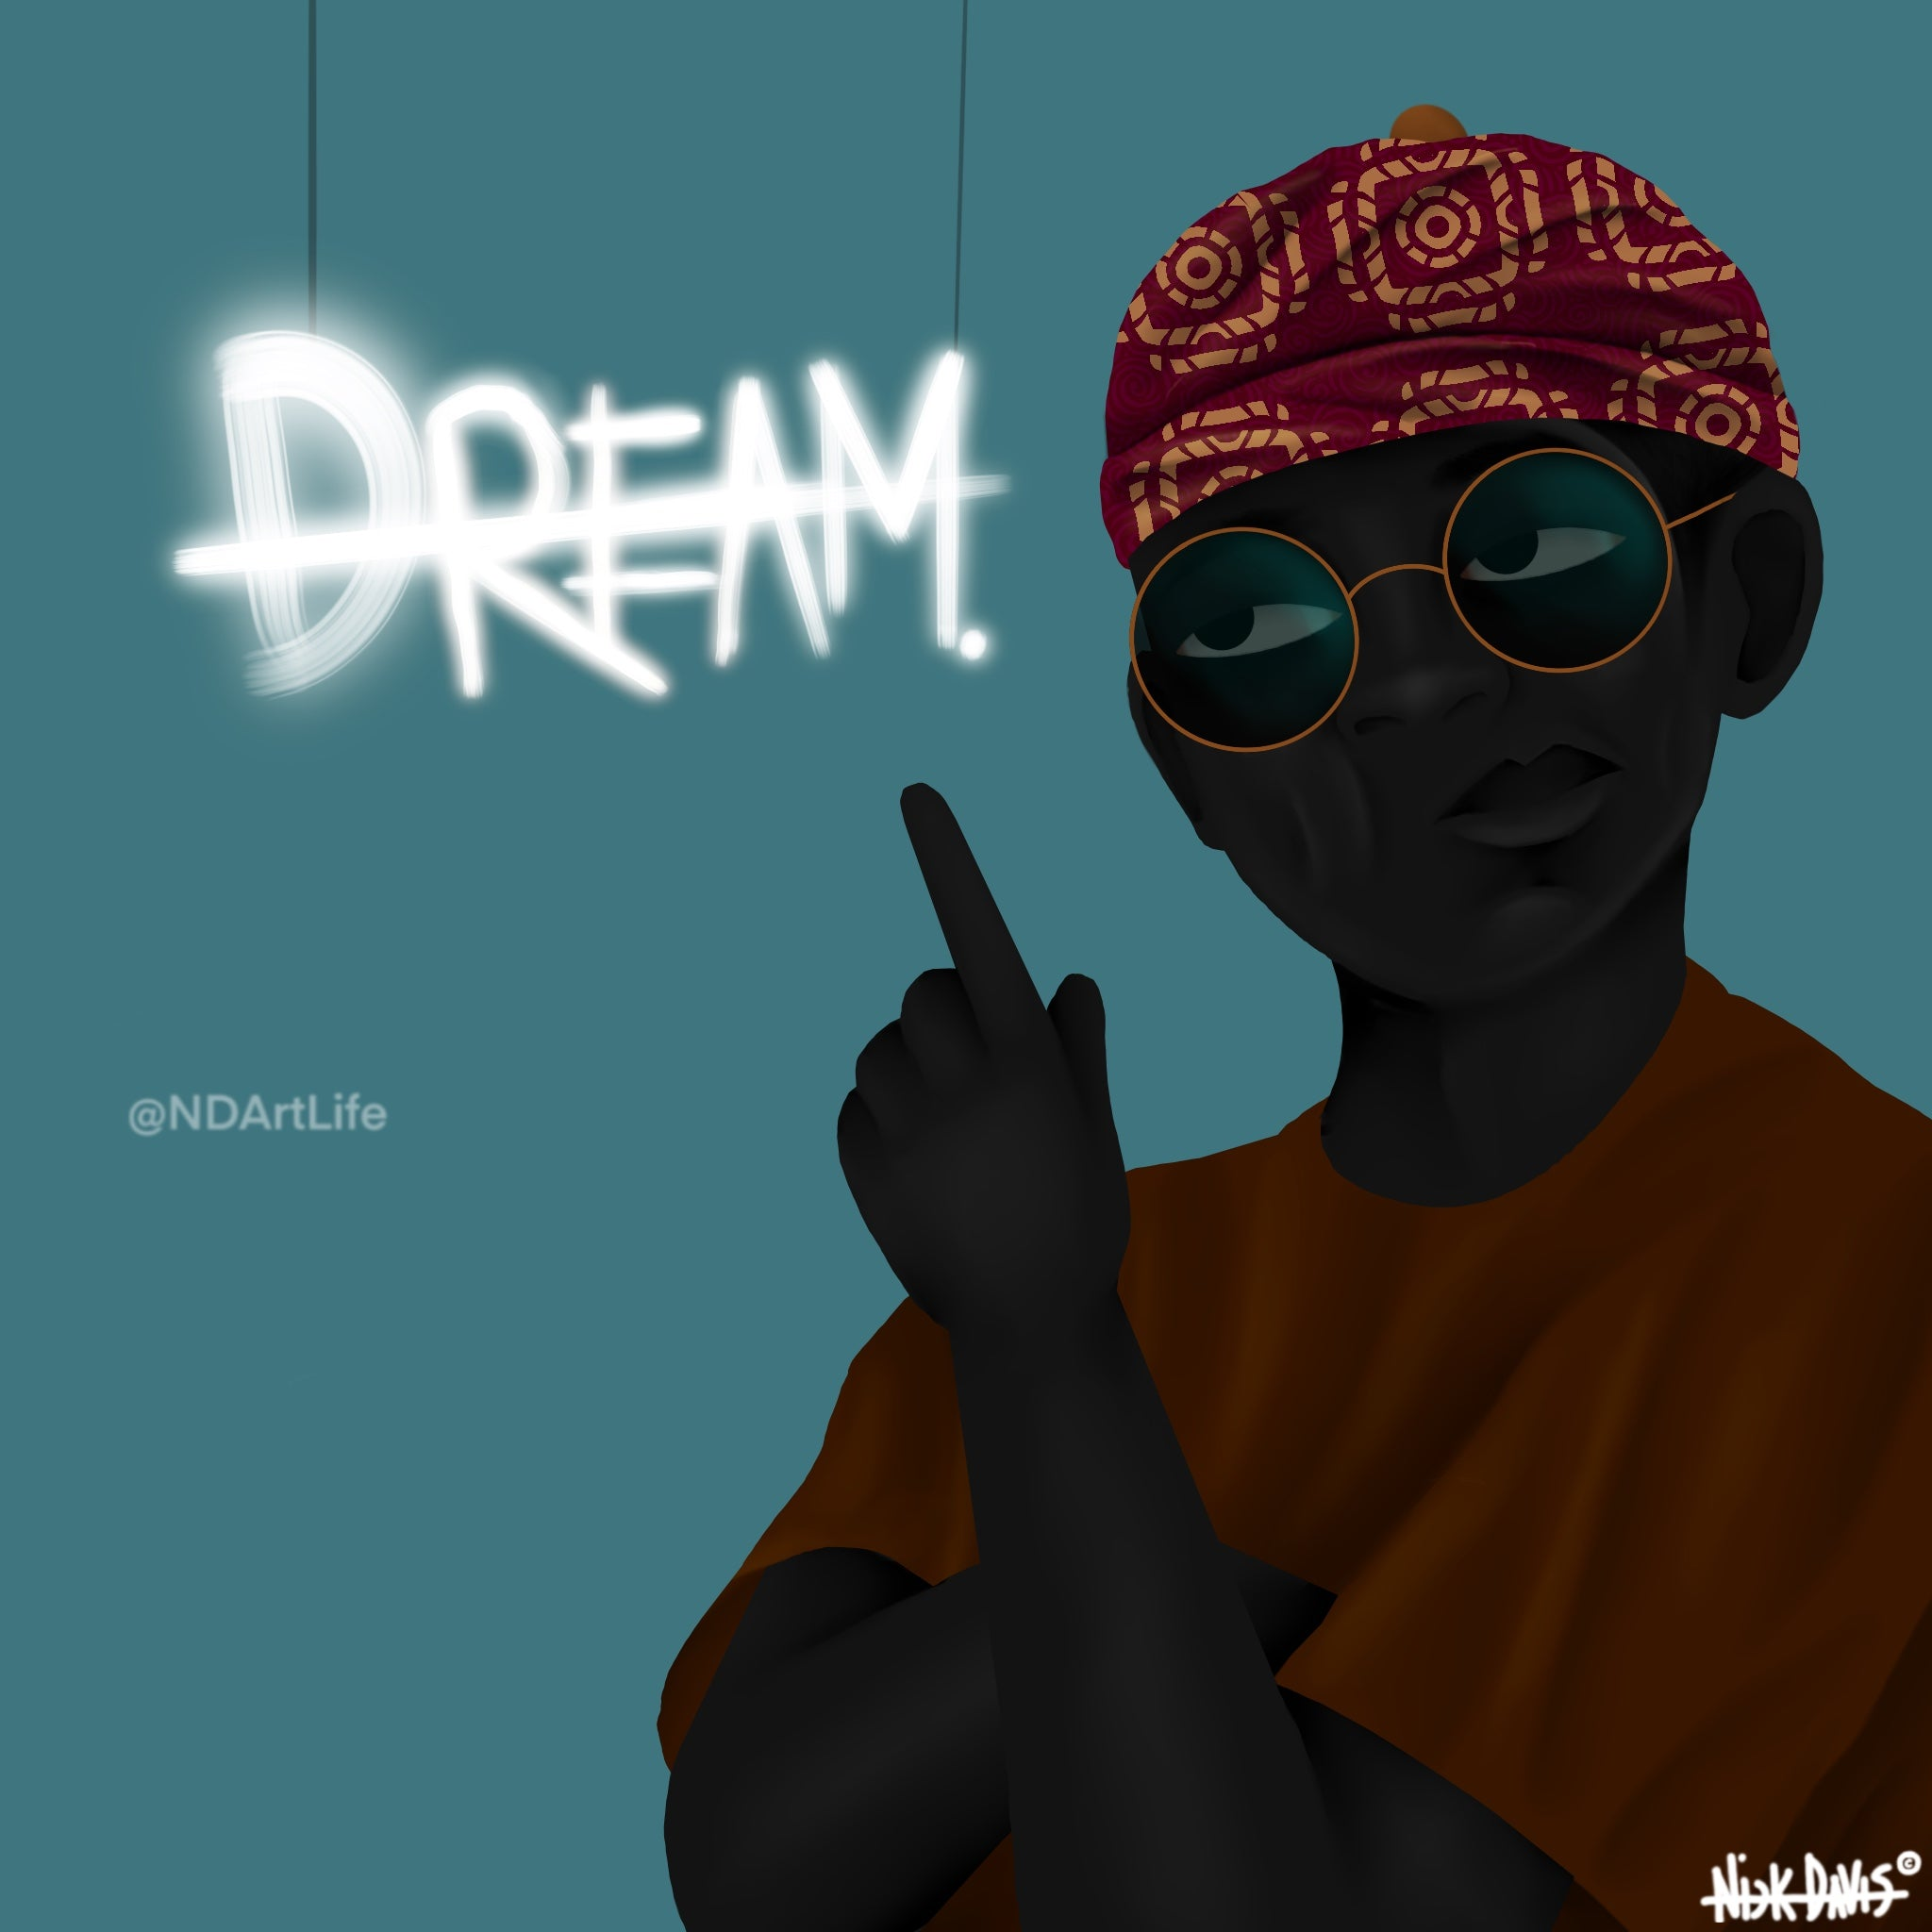 """Dream"" by Nick Davis"